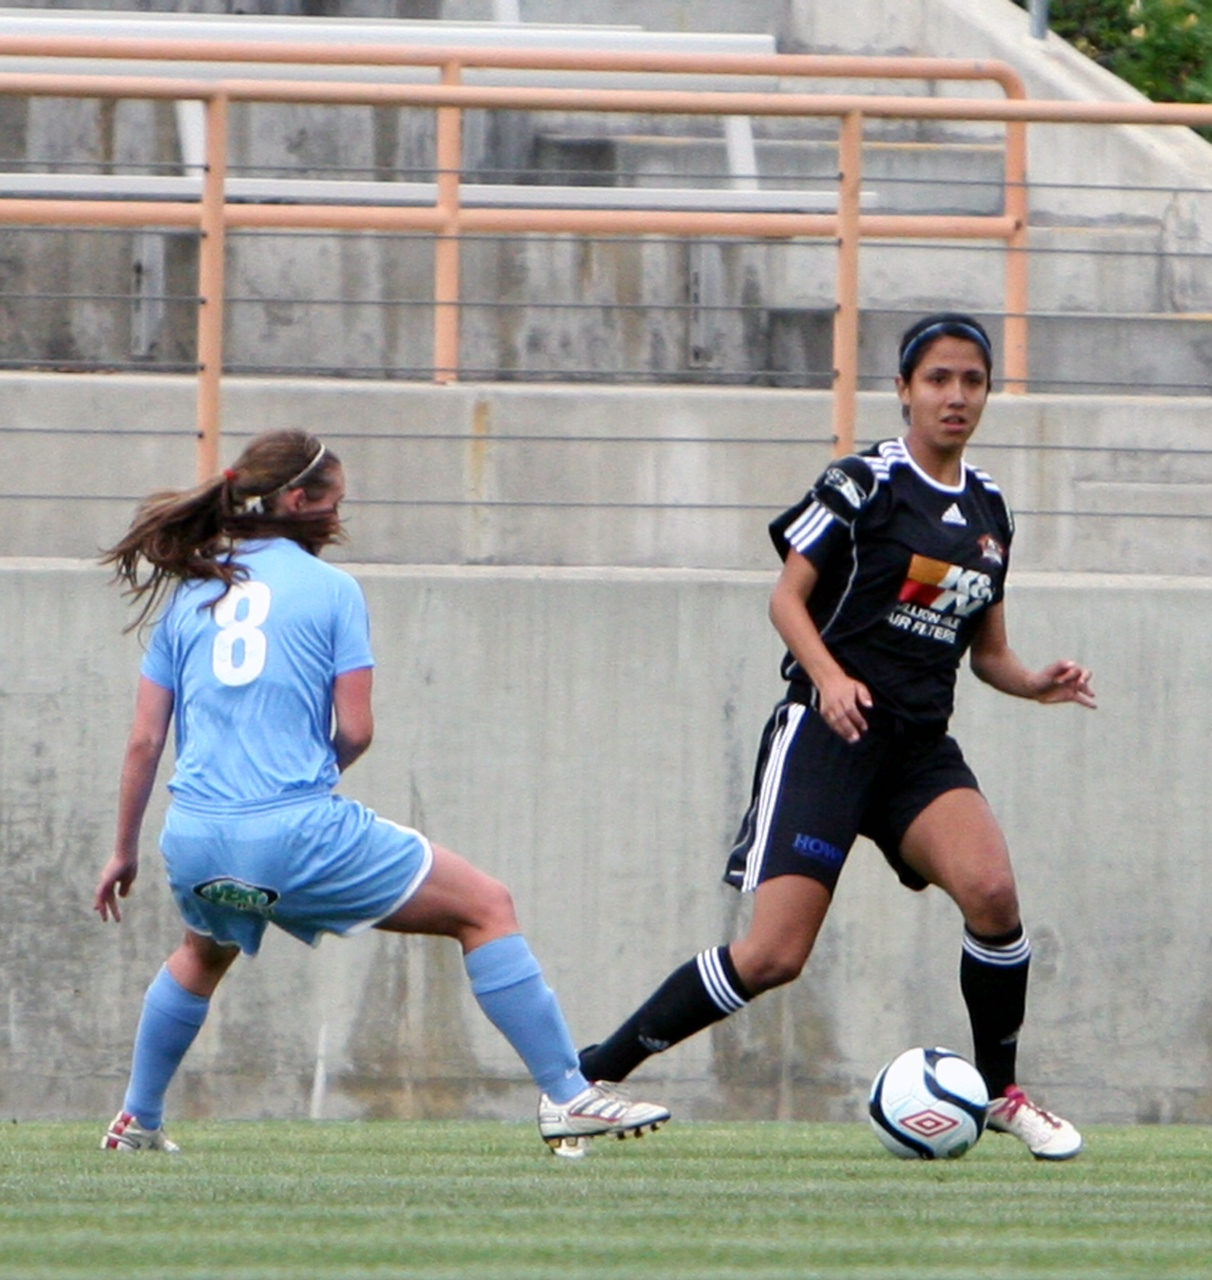 Christina Murillo LA Strikers